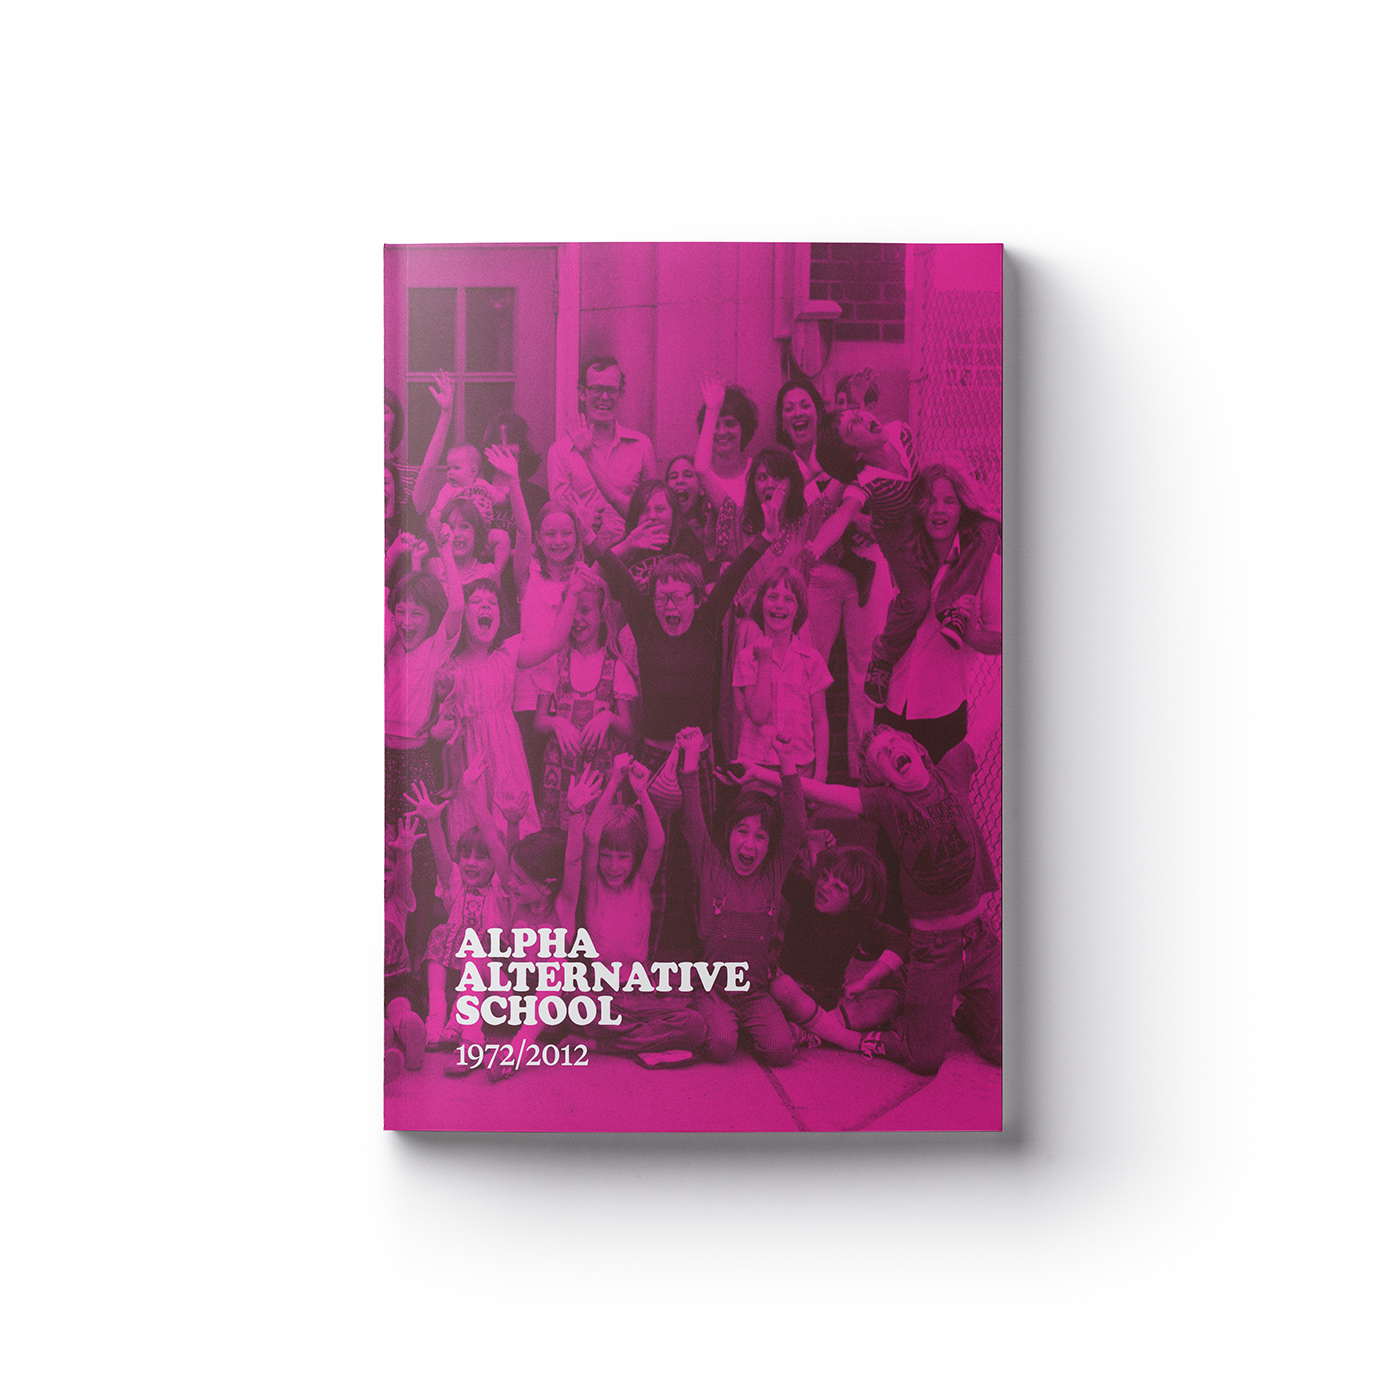 Cover of the book Alpha Alternative School 1972/2012